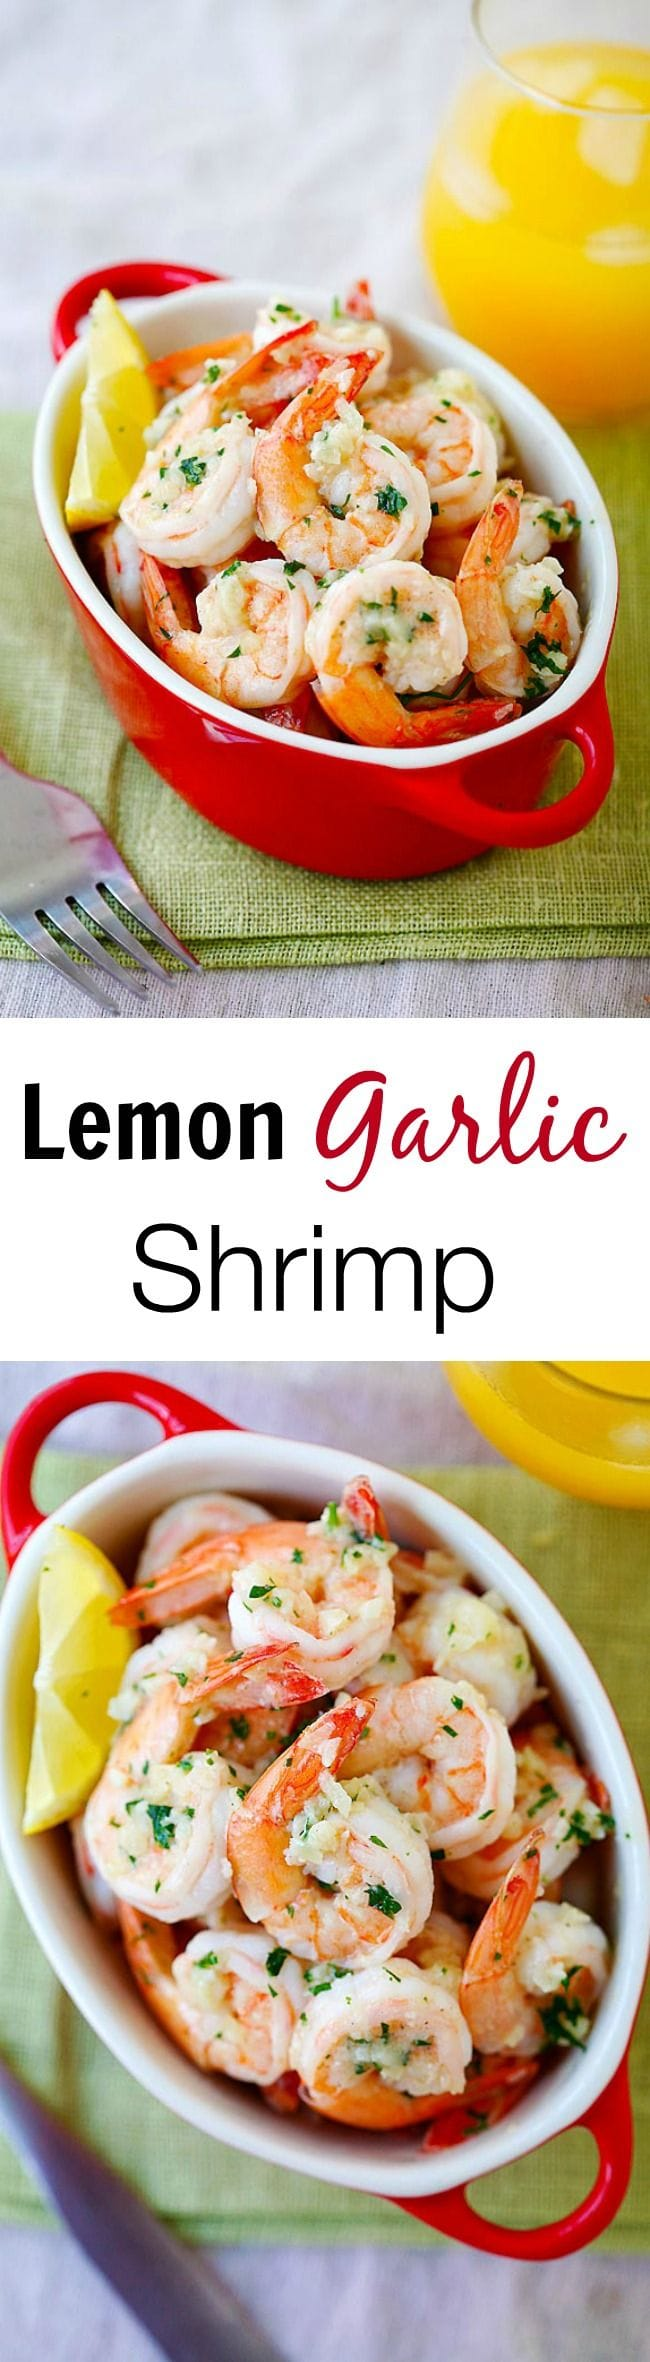 Lemon Garlic Shrimp - easiest and best shrimp recipe with garlic, shrimp, butter and lemon, all ready in 20 mins. Perfect as appetizer or with pasta | rasamalaysia.com